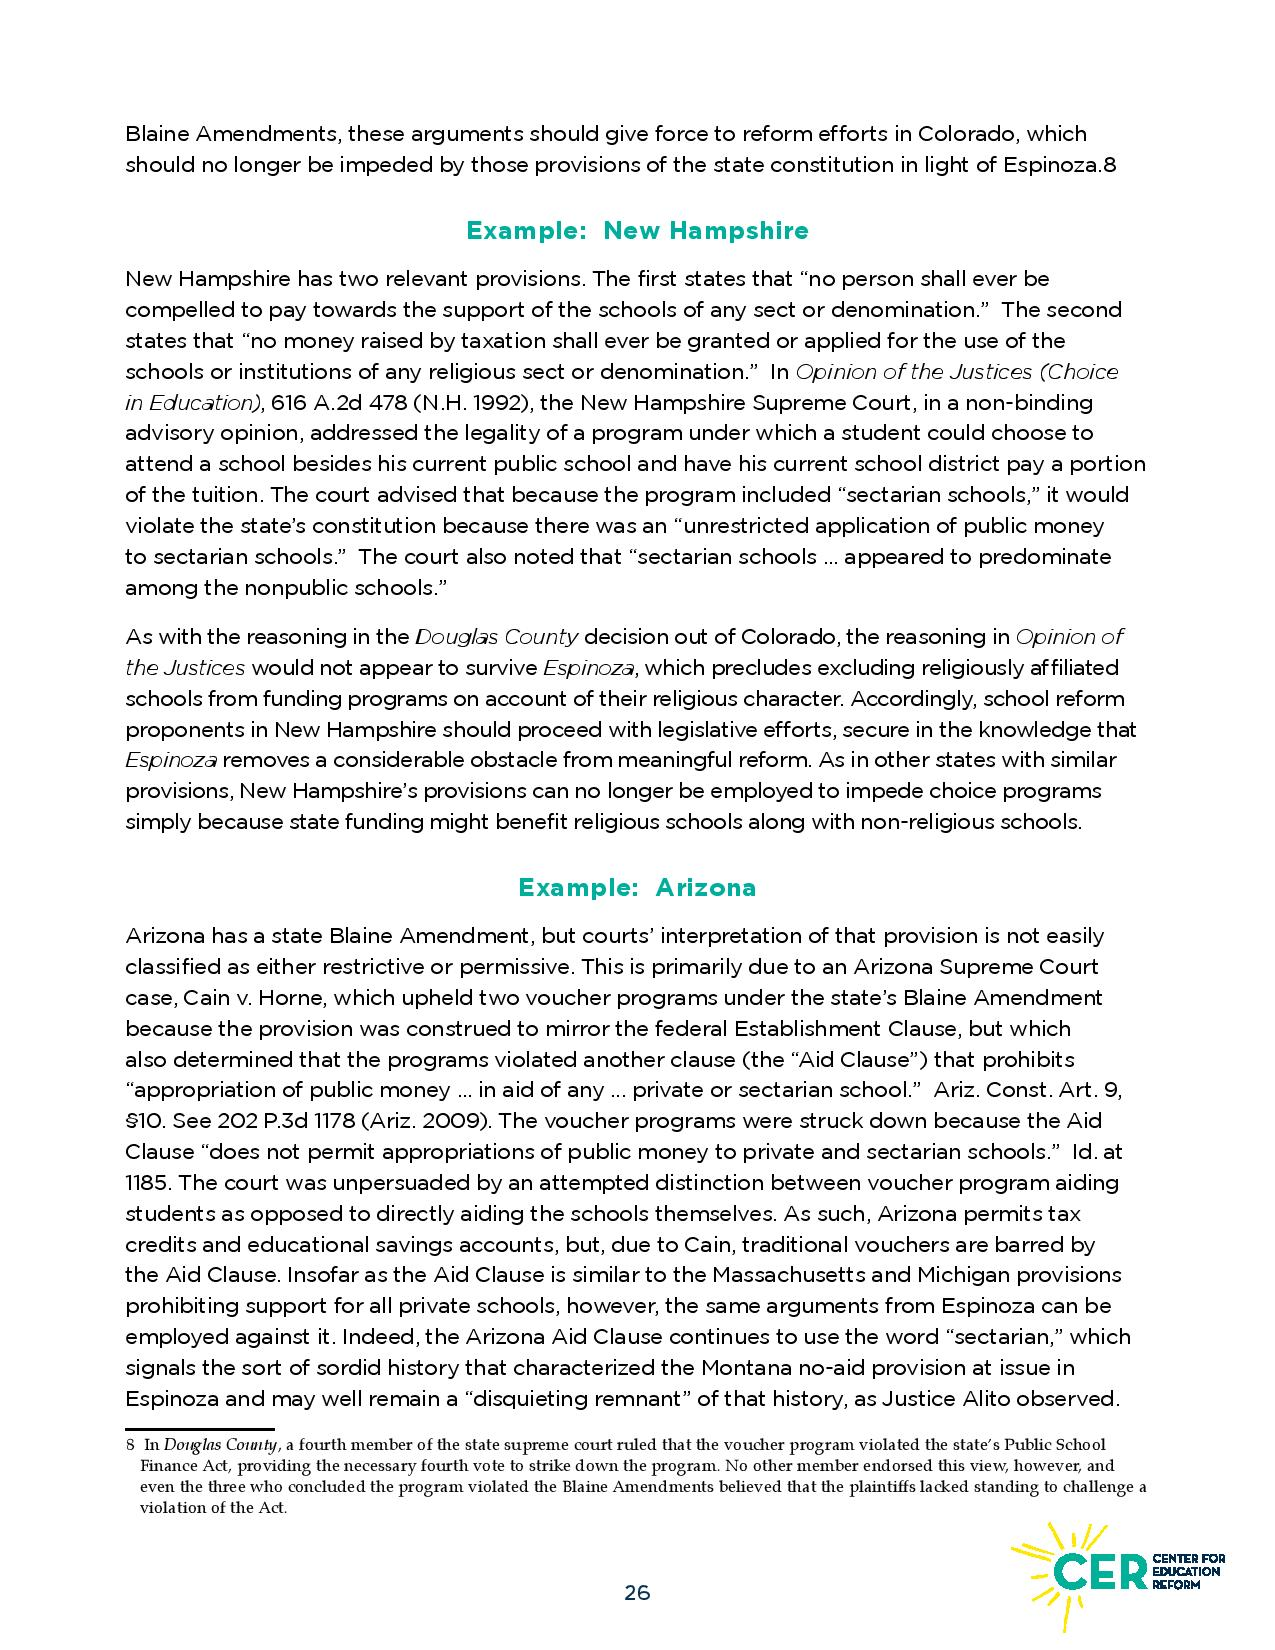 CER_Whitepaper_Blaine-page-026